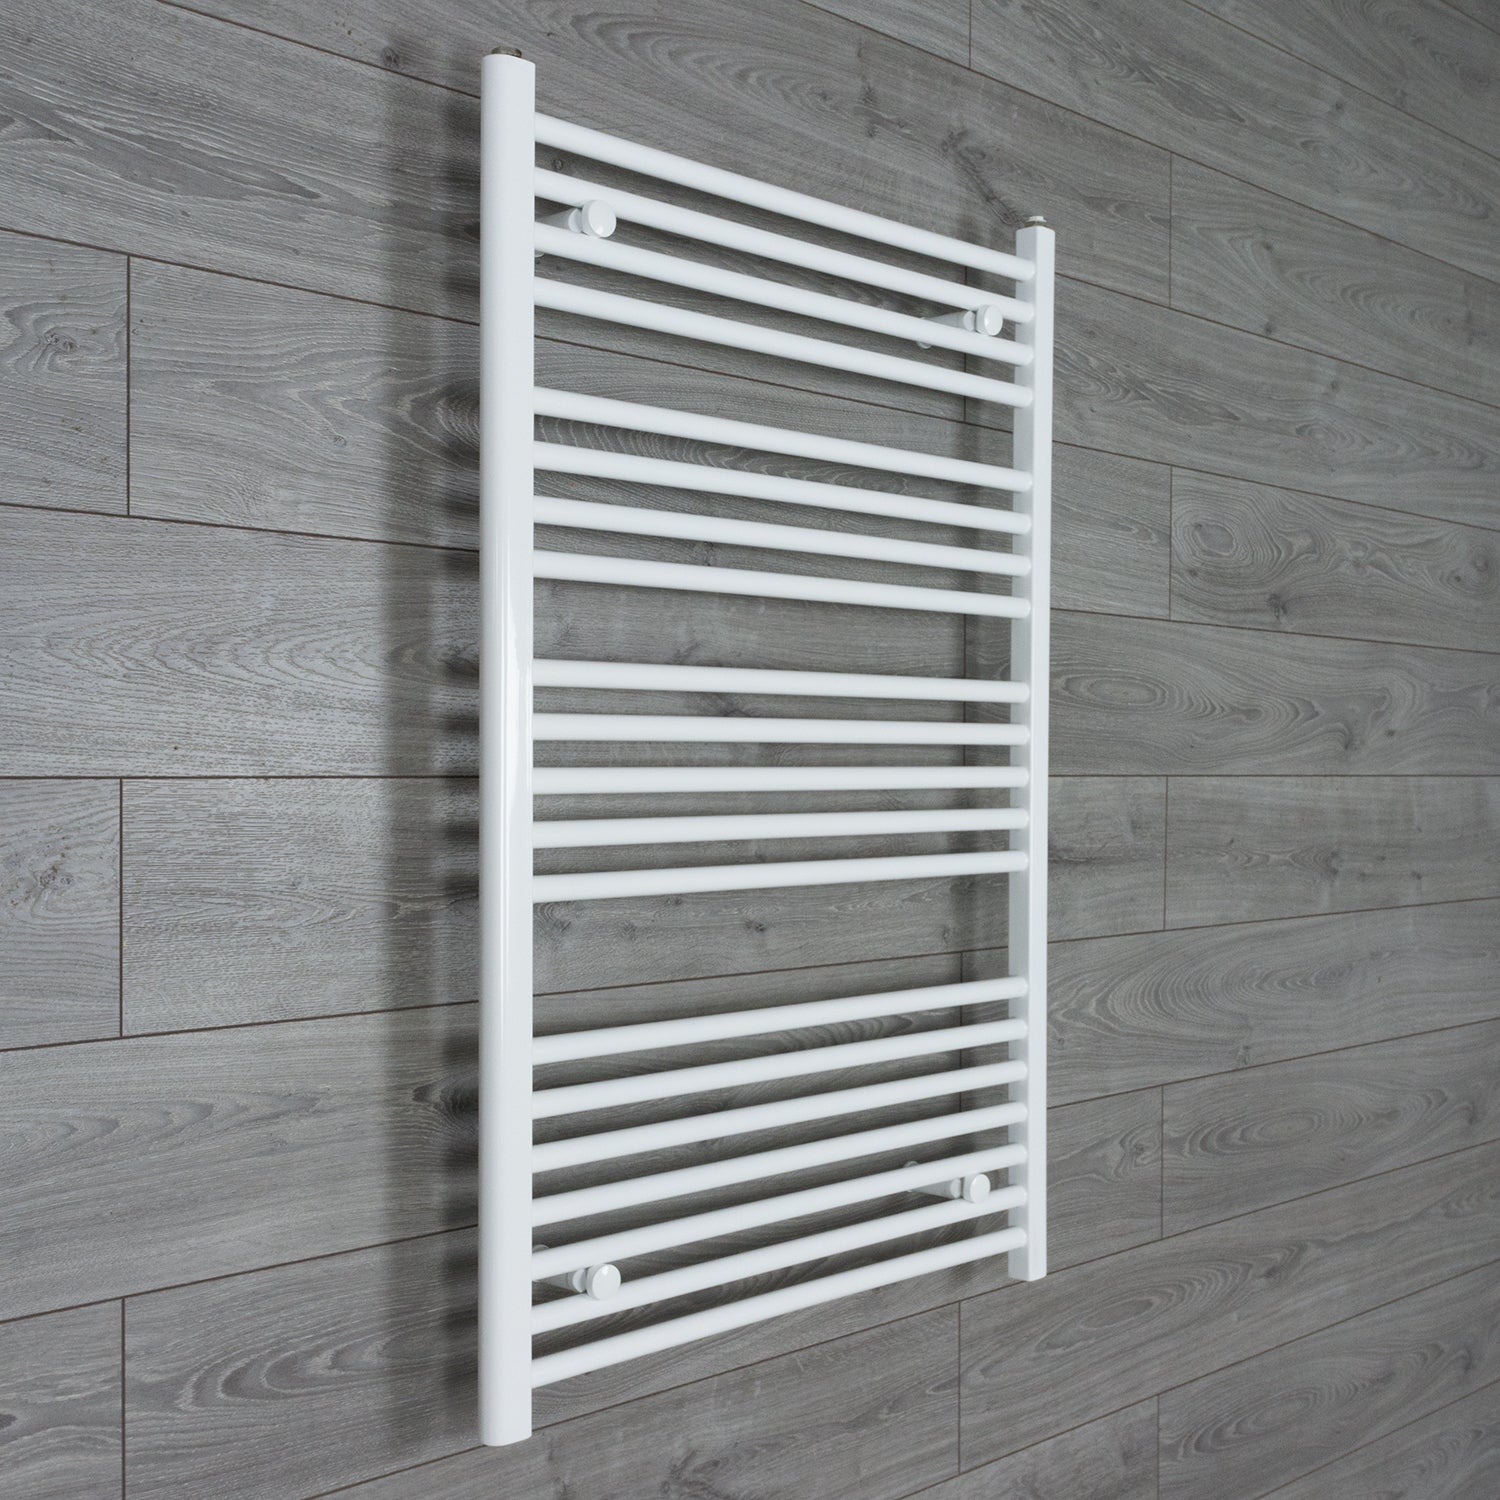 700mm Wide 1100mm High White Towel Rail Radiator